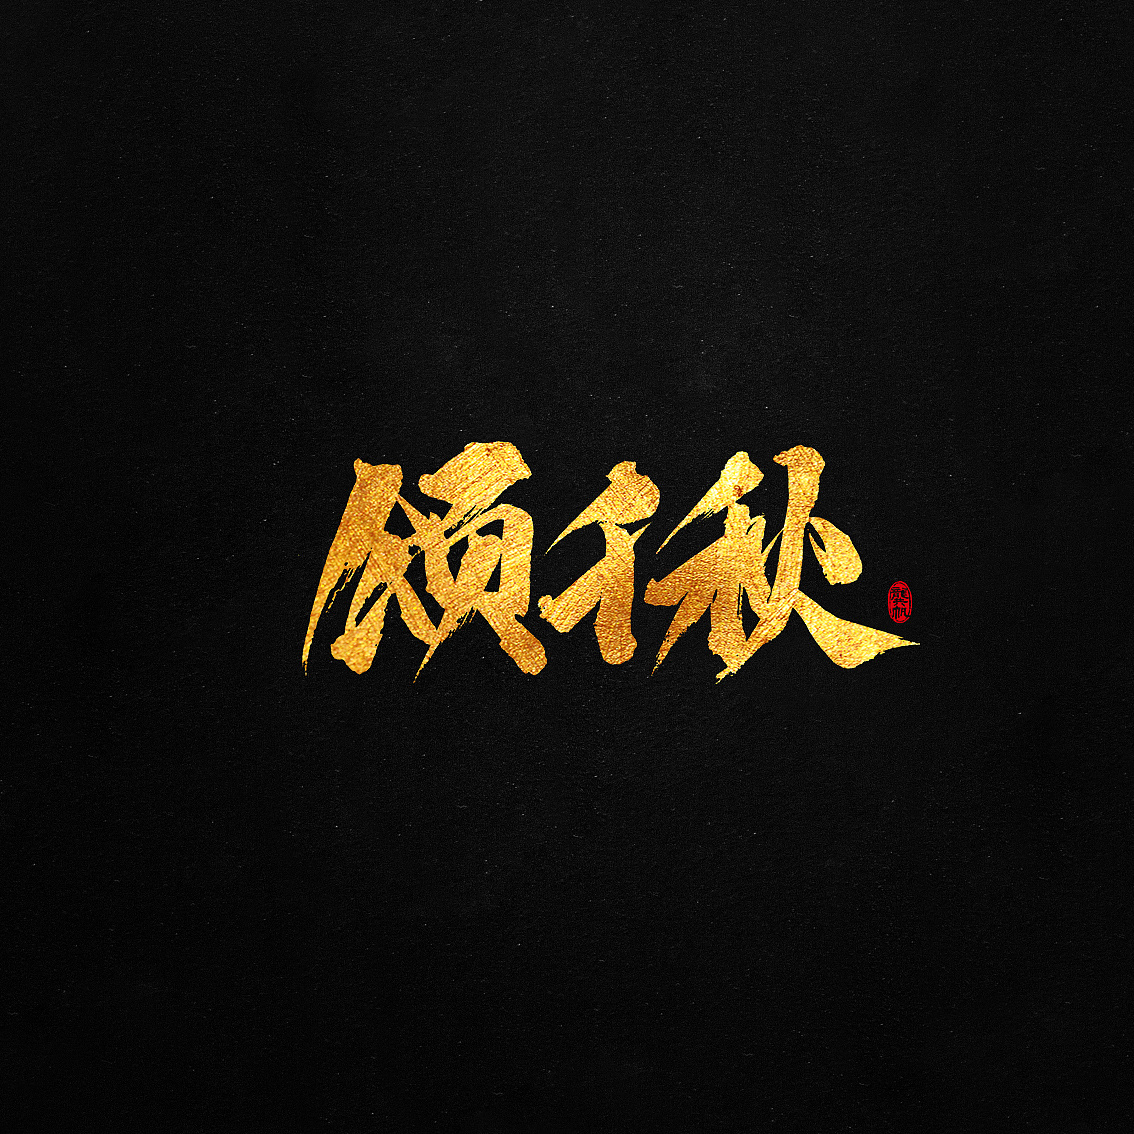 chinesefontdesign.com 2018 03 12 12 54 57 133496 12P Chinese traditional calligraphy brush calligraphy font style appreciation #105